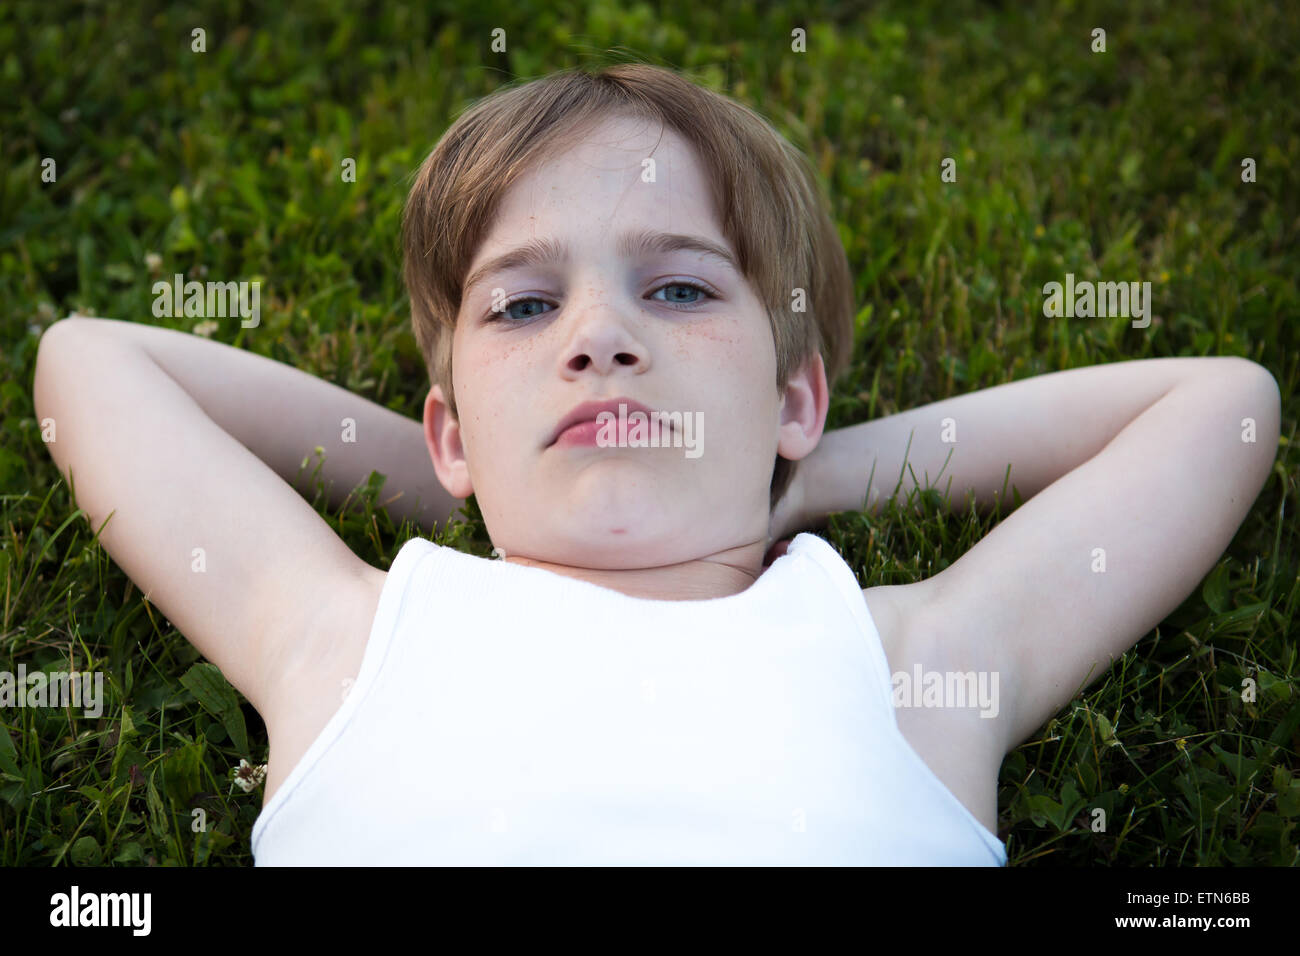 Boy lying on the grass with his hands behind his head - Stock Image